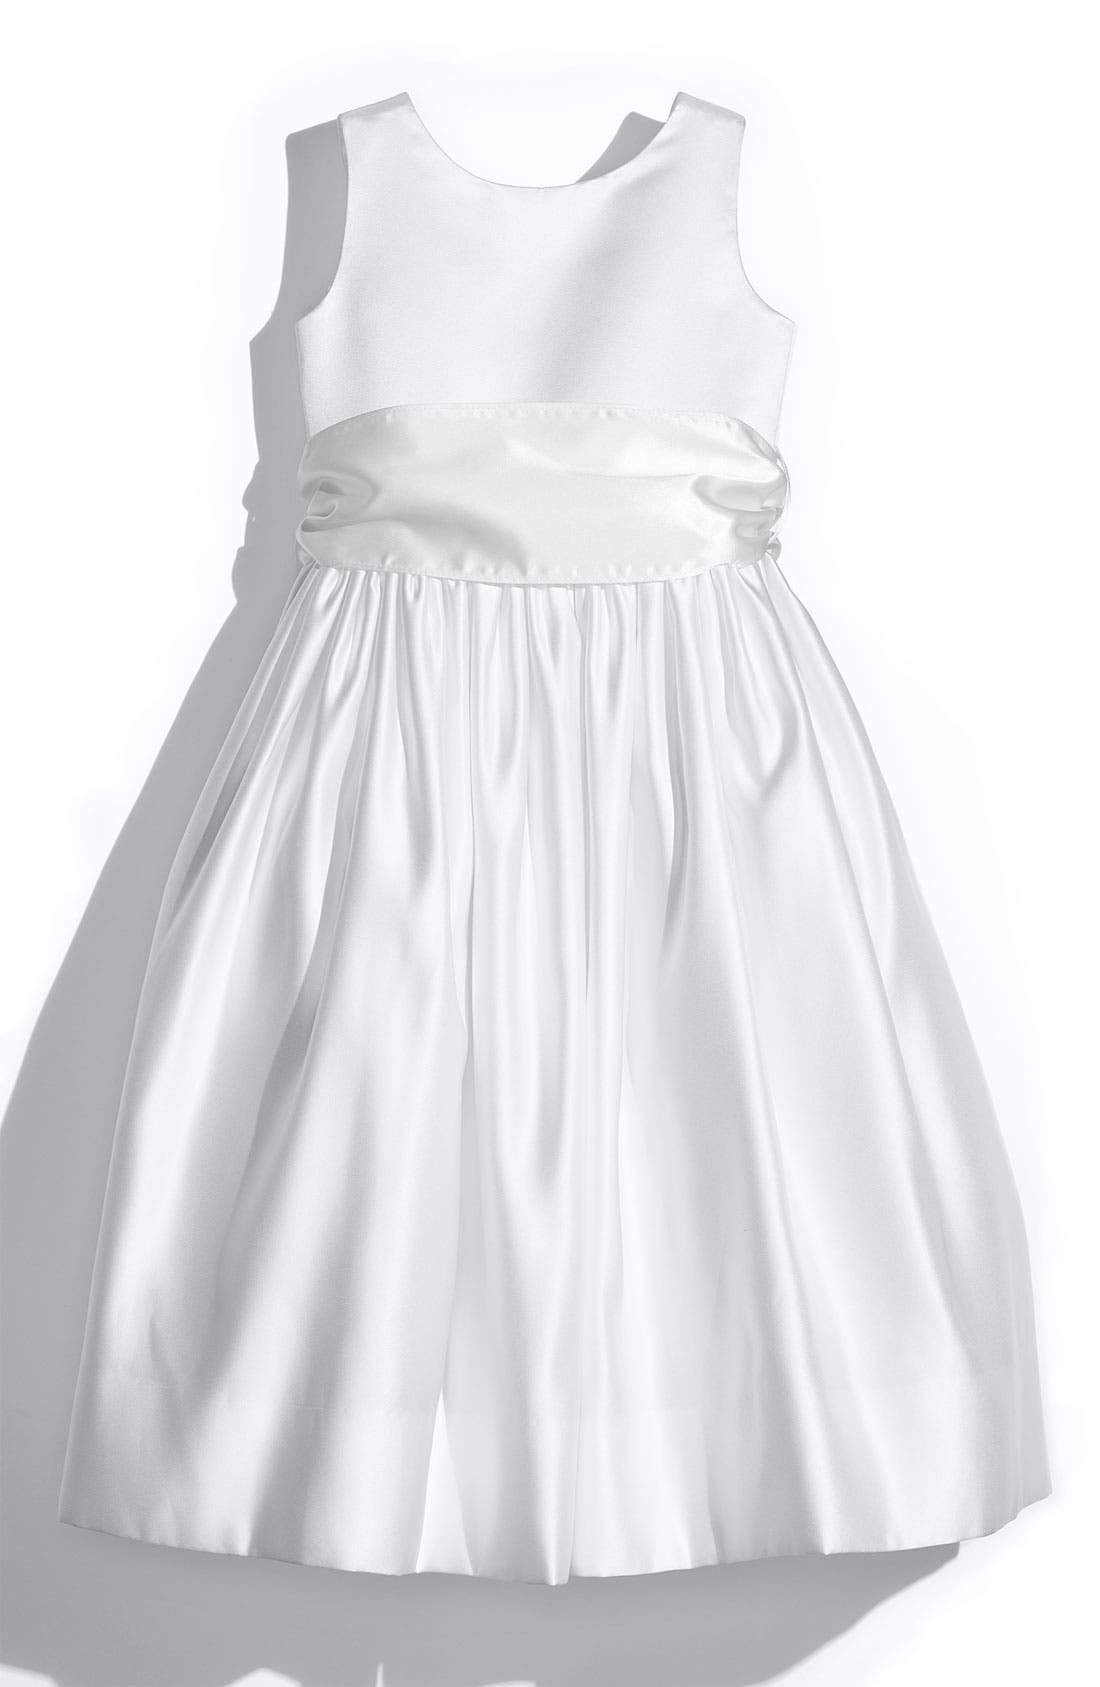 Girls' White Dresses & Rompers: Everyday & Special Occasion ...